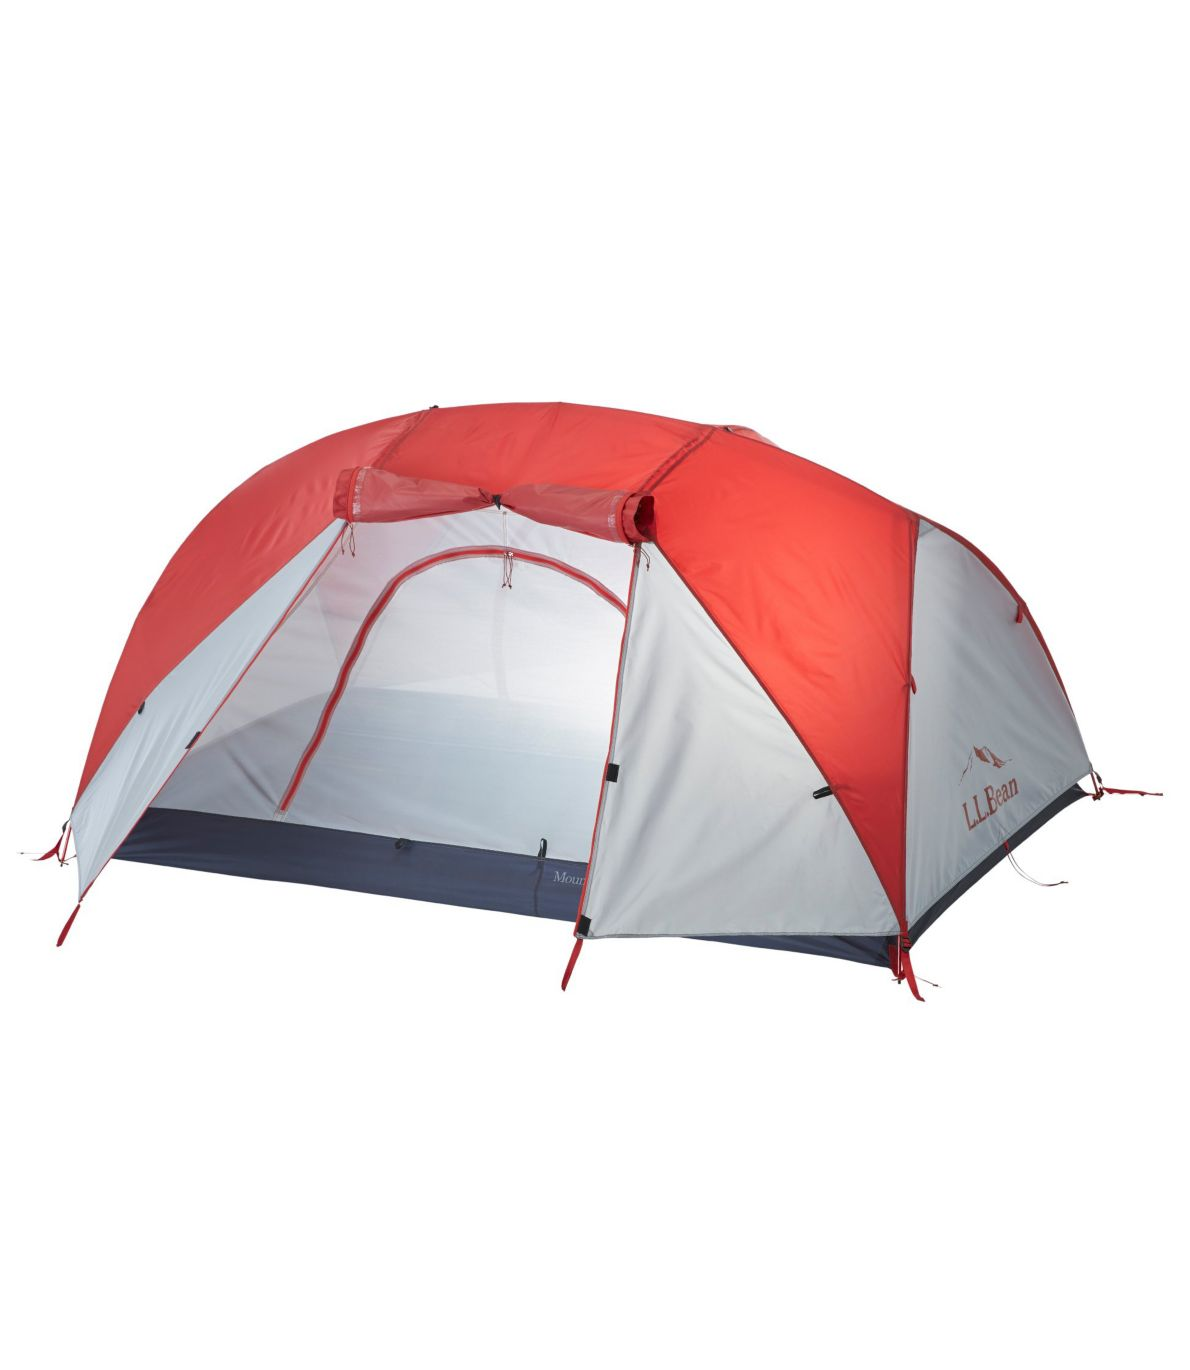 L.L.Bean Mountain Light HV 2 Tent With Footprint